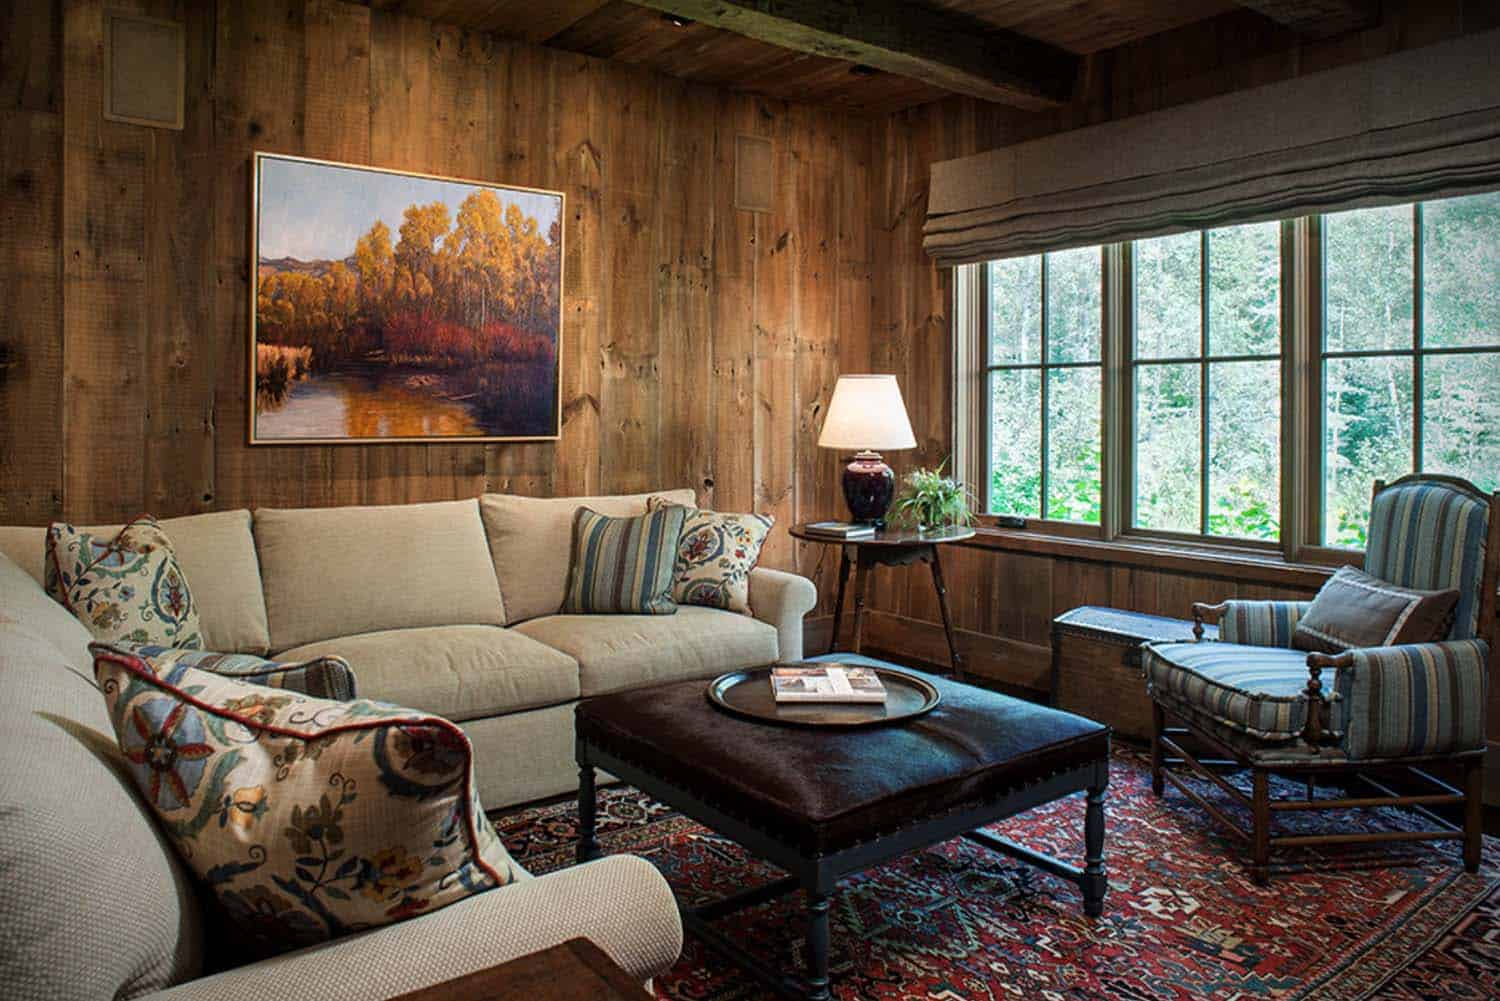 Wood River Valley Chalet-Miller Architects-14-1 Kindesign